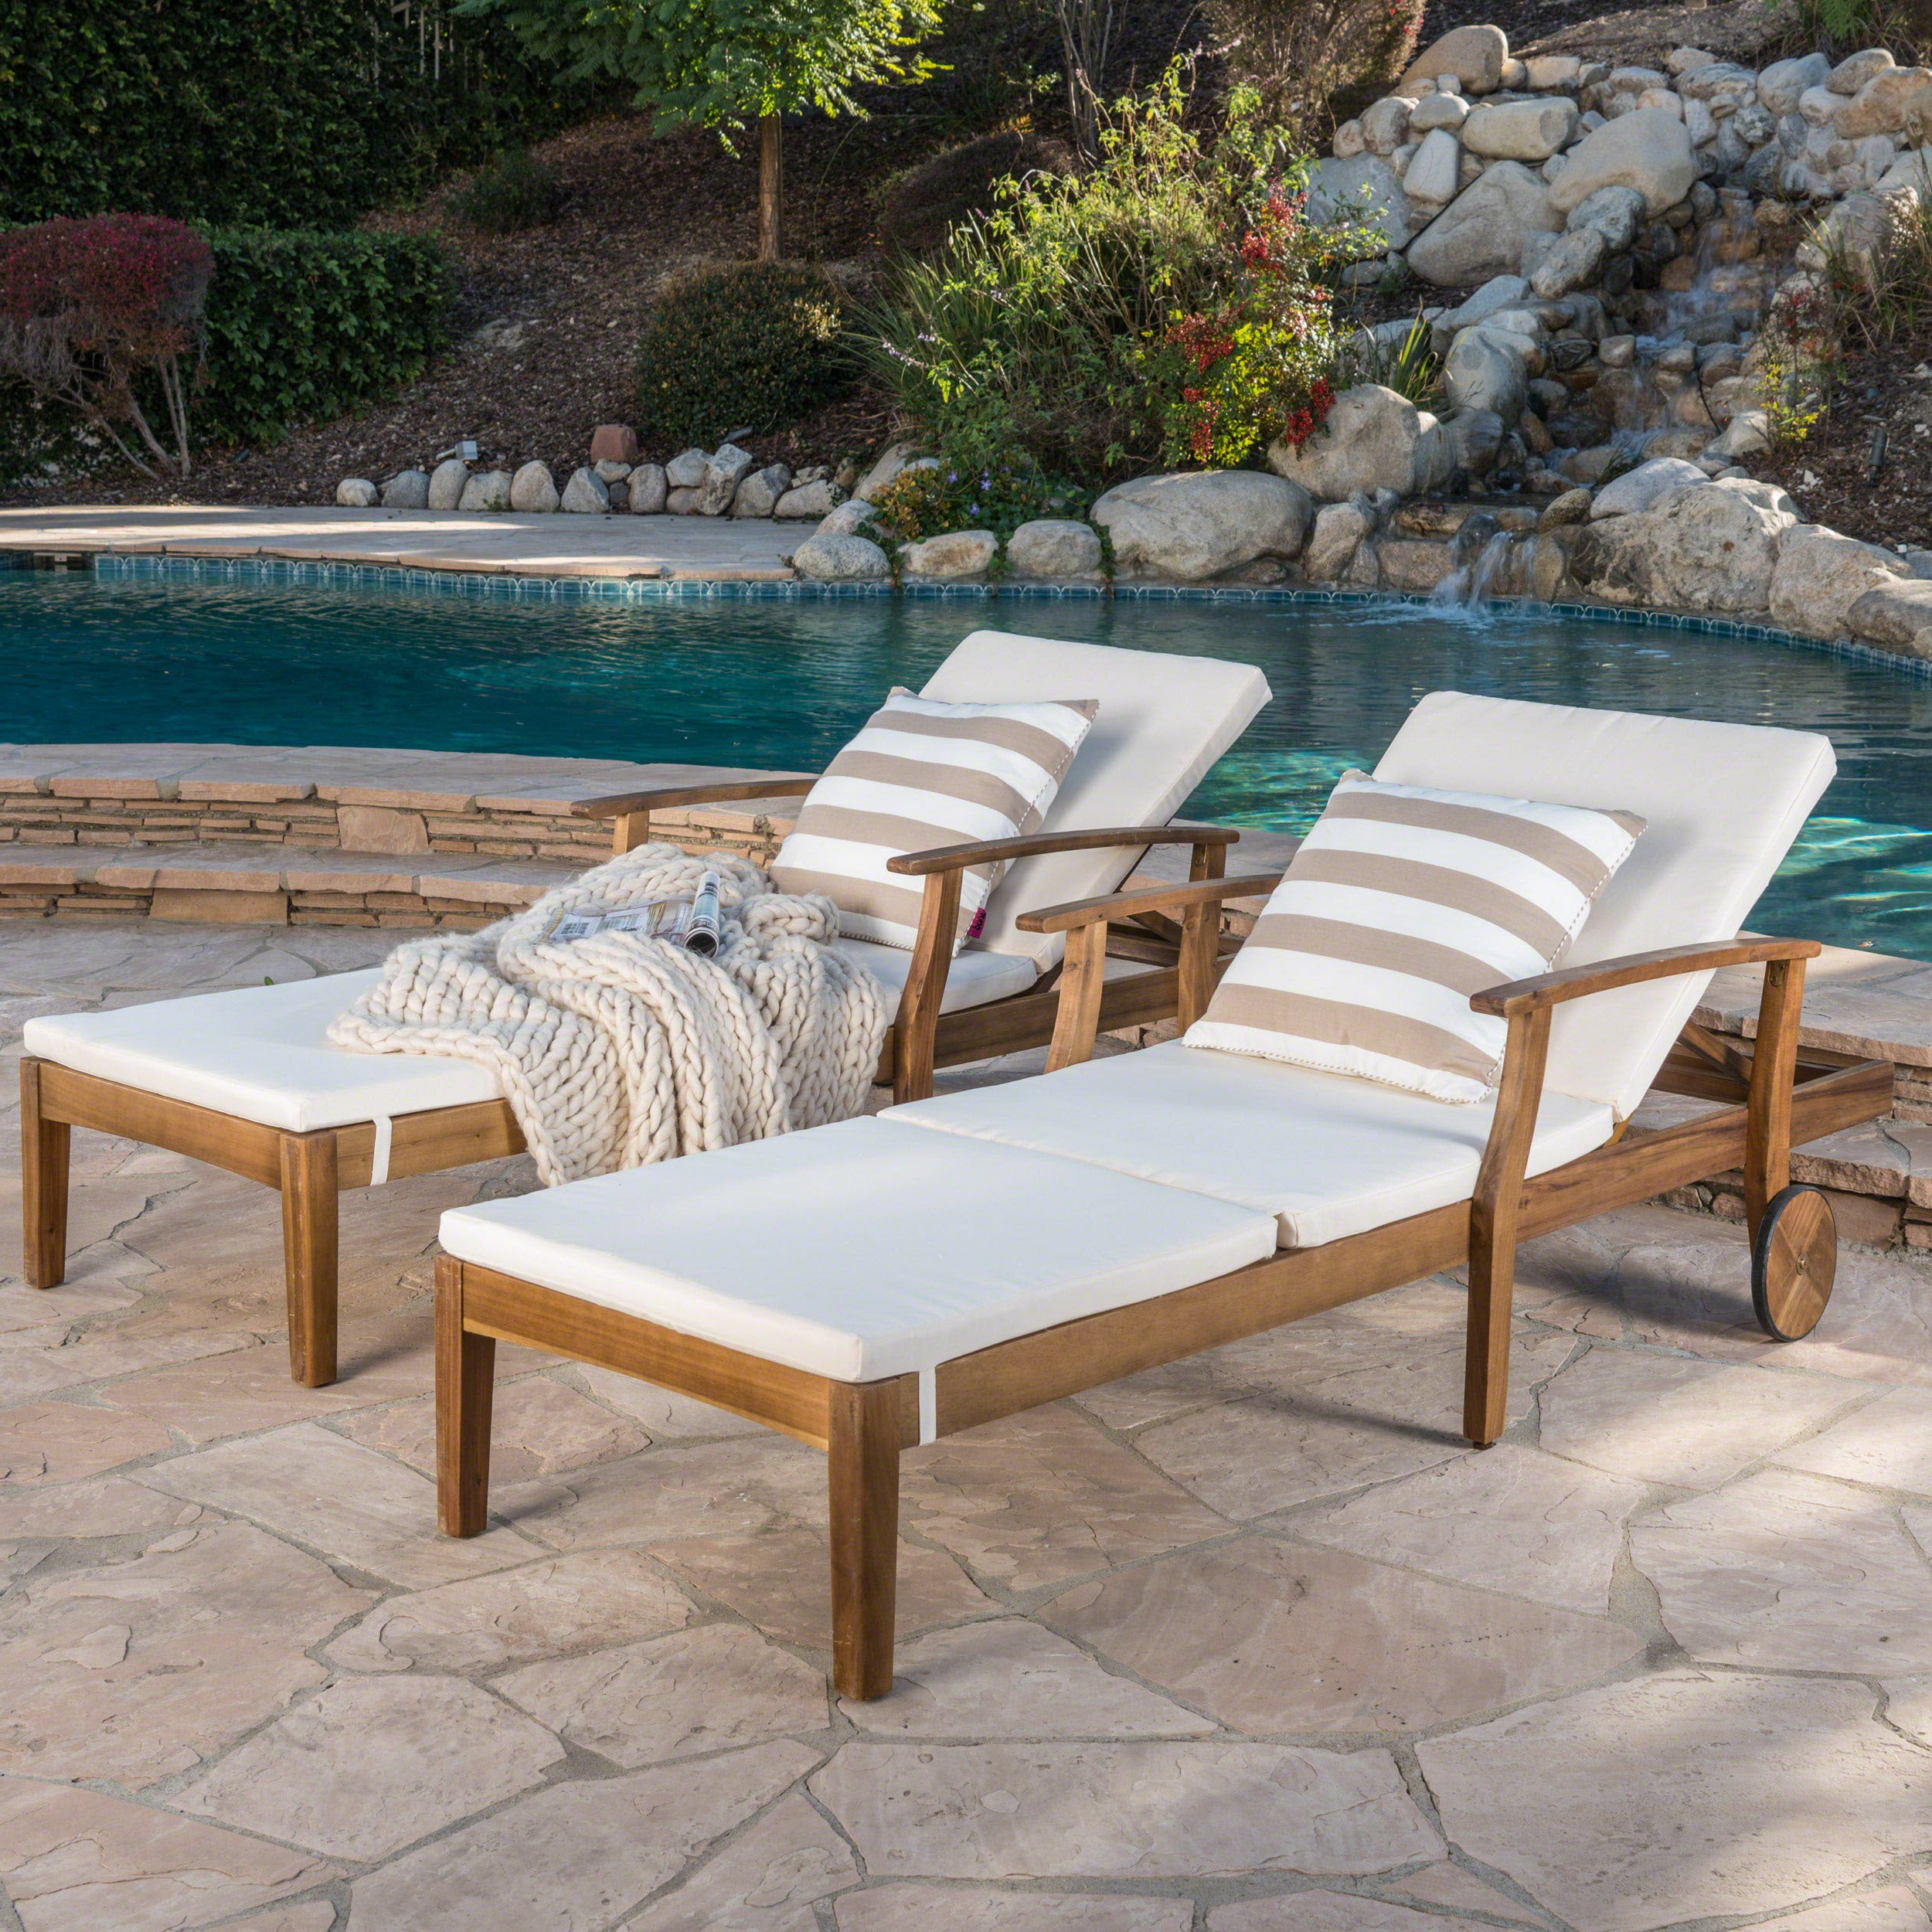 Perla Outdoor Acacia Wood Chaise Lounge With Cushion (Set Of 2) Christopher Knight Home Regarding Fashionable Perla Outdoor Acacia Wood Chaise Lounges (Gallery 1 of 25)